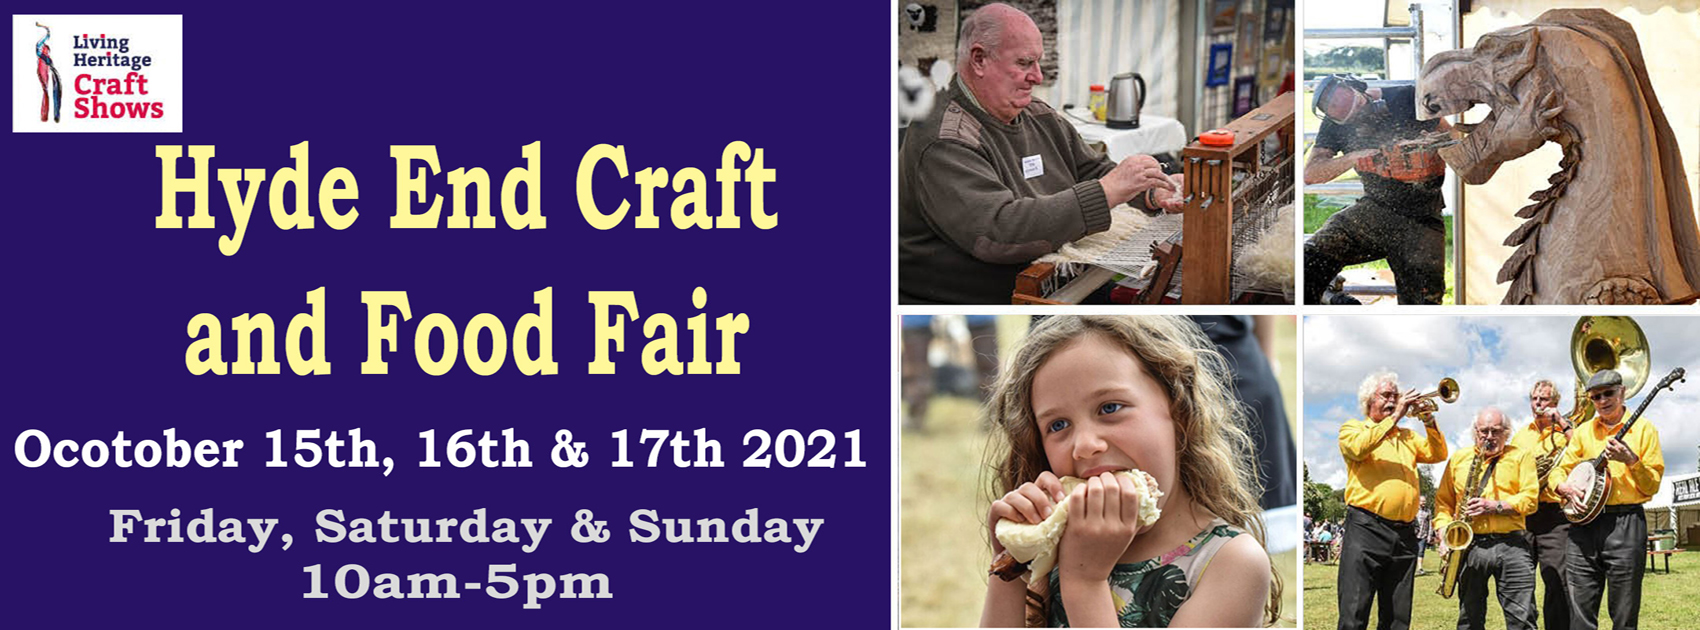 Hyde End Craft and Food Fair